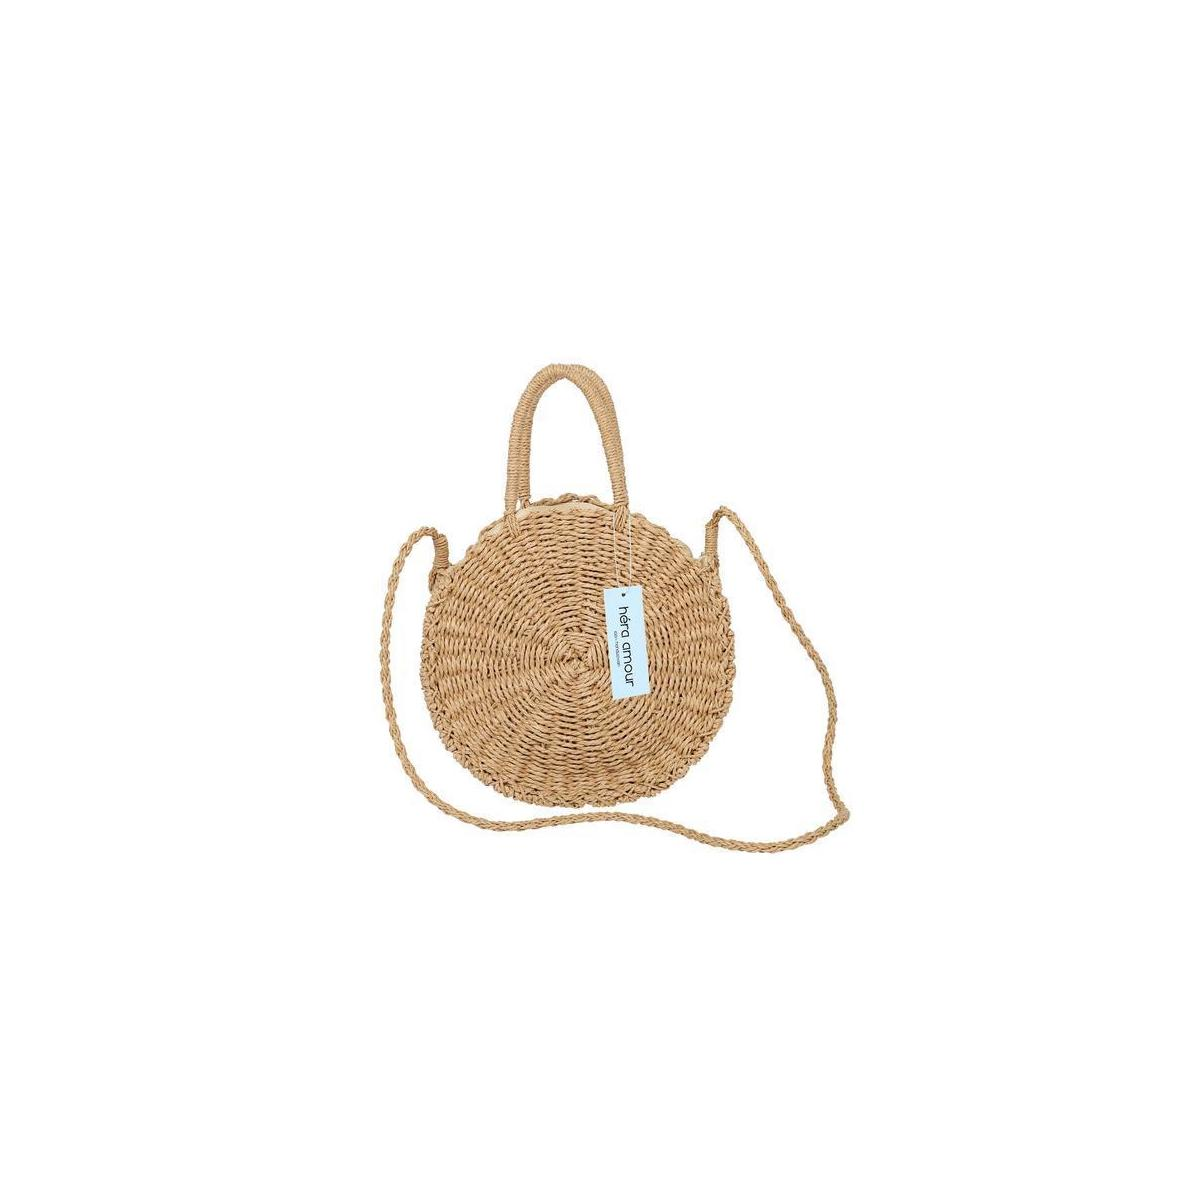 Large Straw Beach Bag with Inner Pouch  [Rebate is for Camel only, not other color]